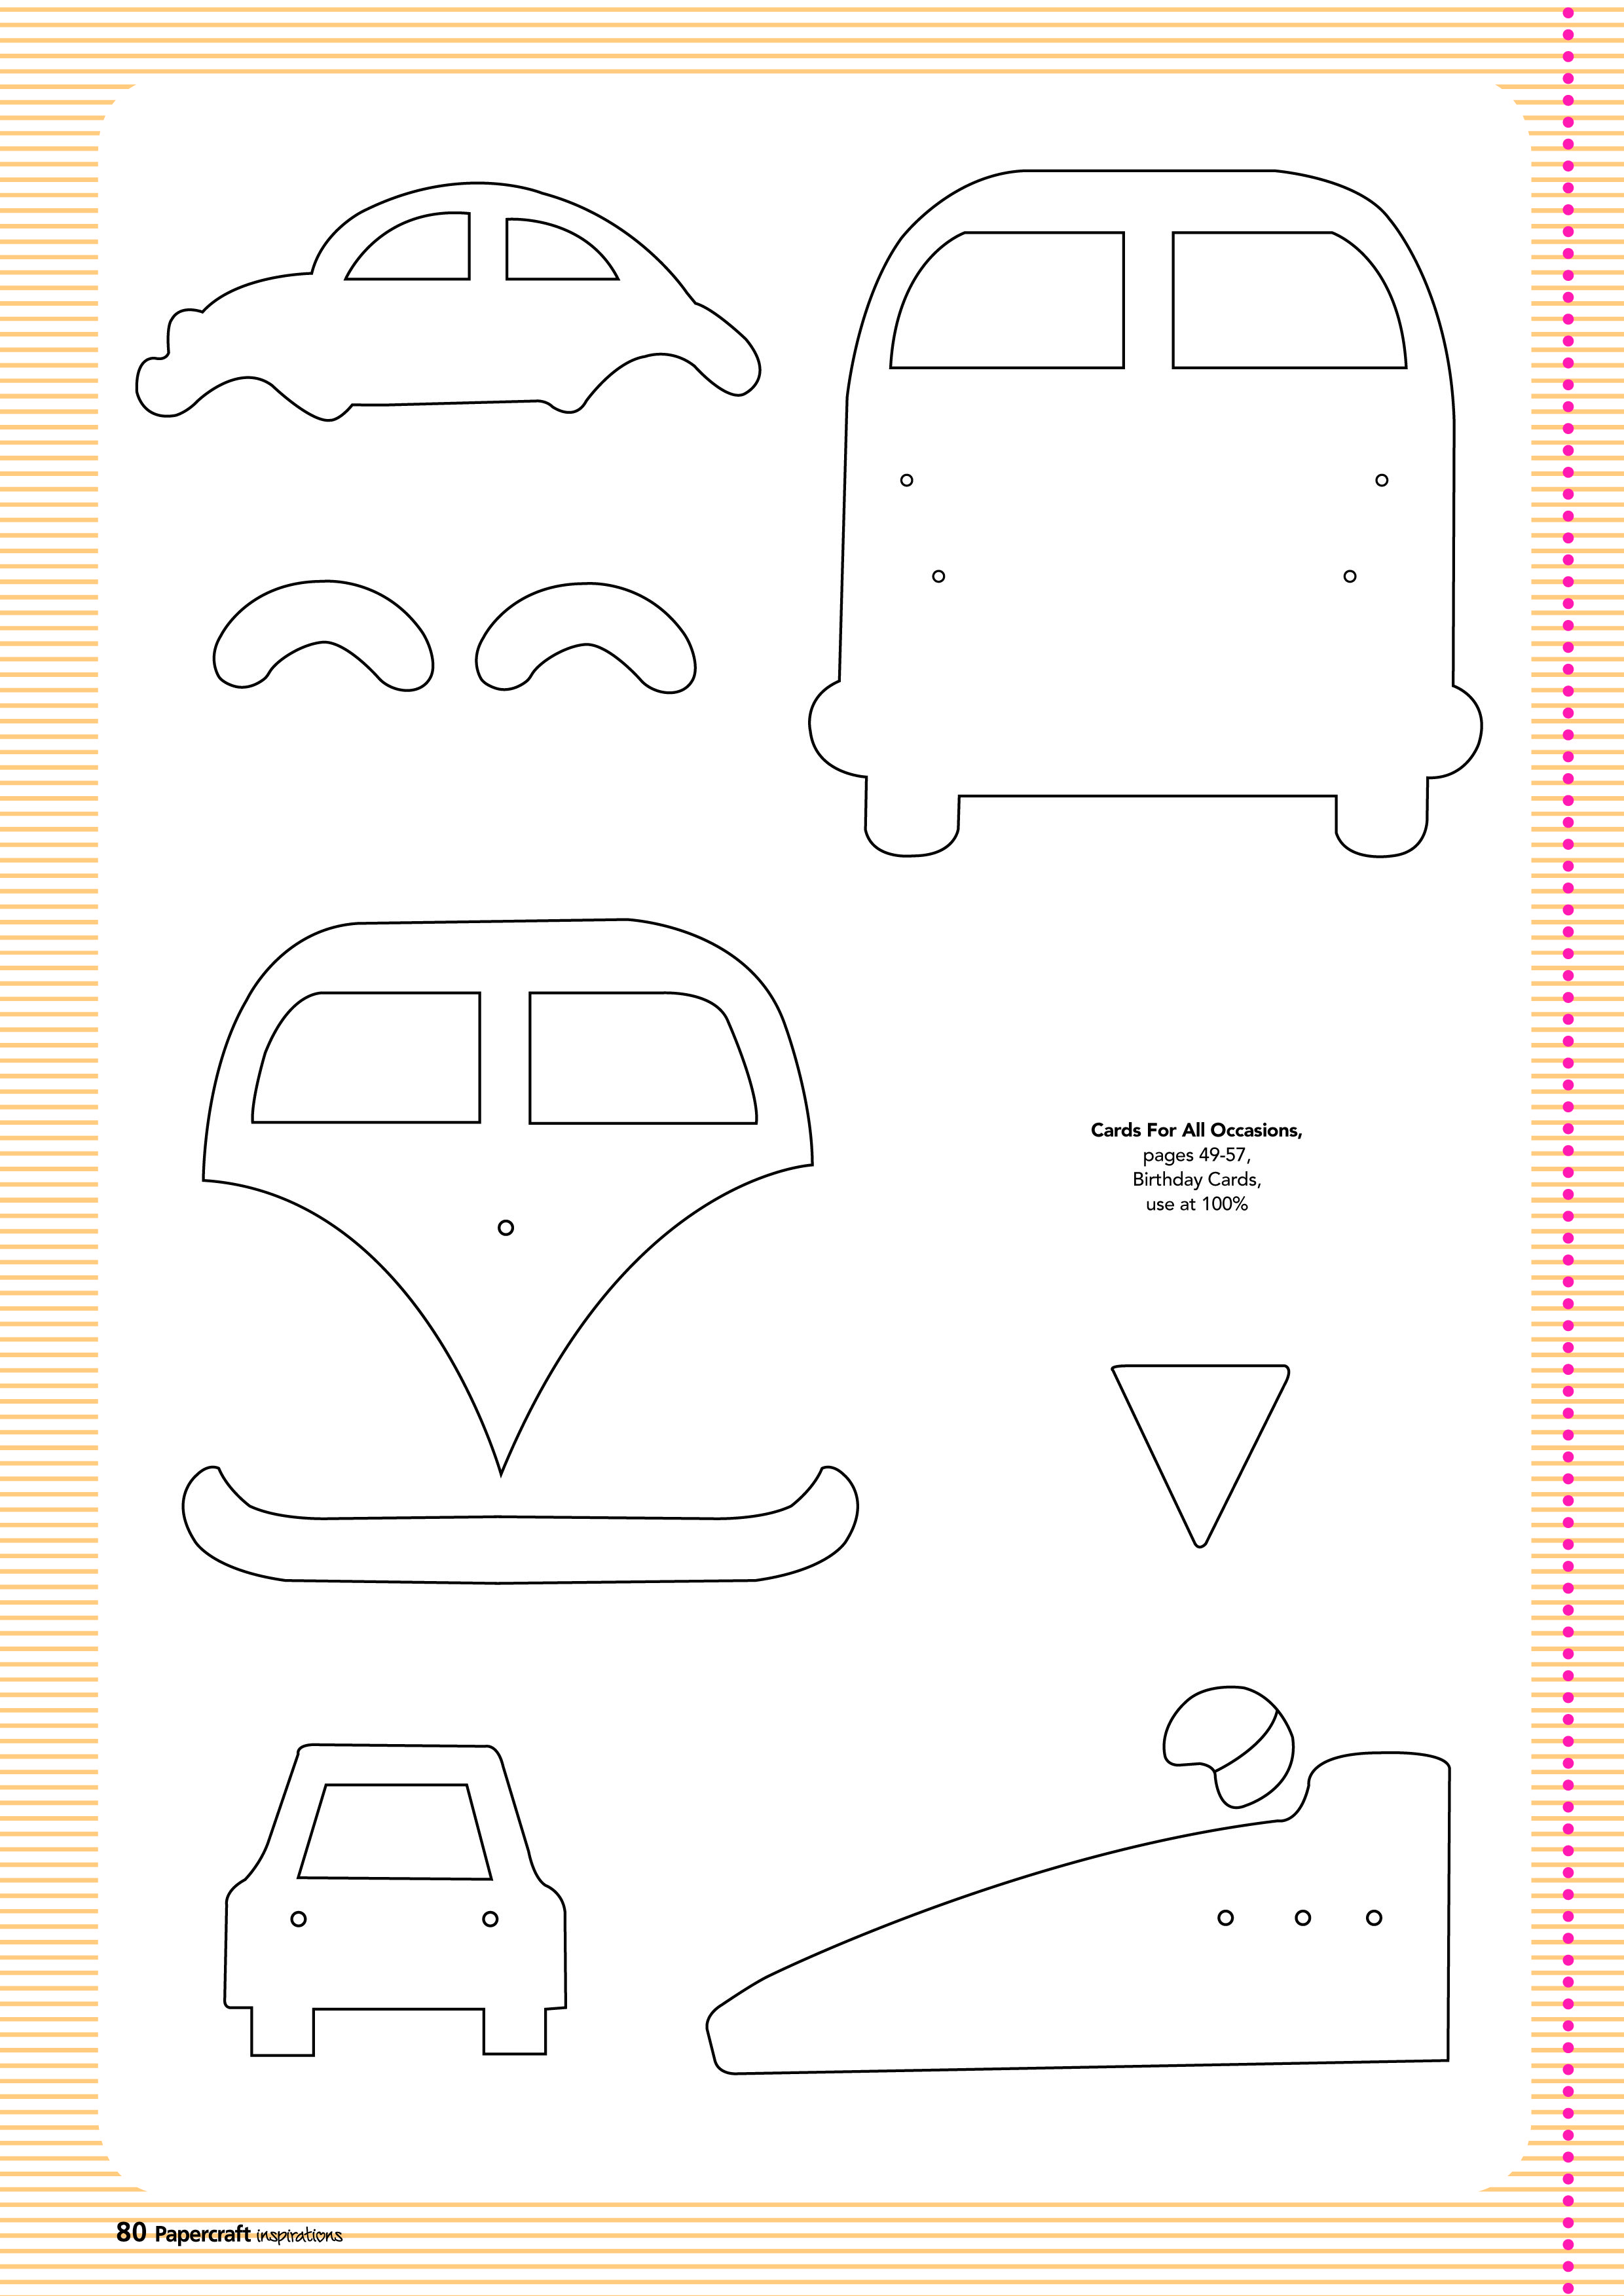 Free Card Making Templates From Papercraft Inspirations 123 - Free Card Making Templates Printable